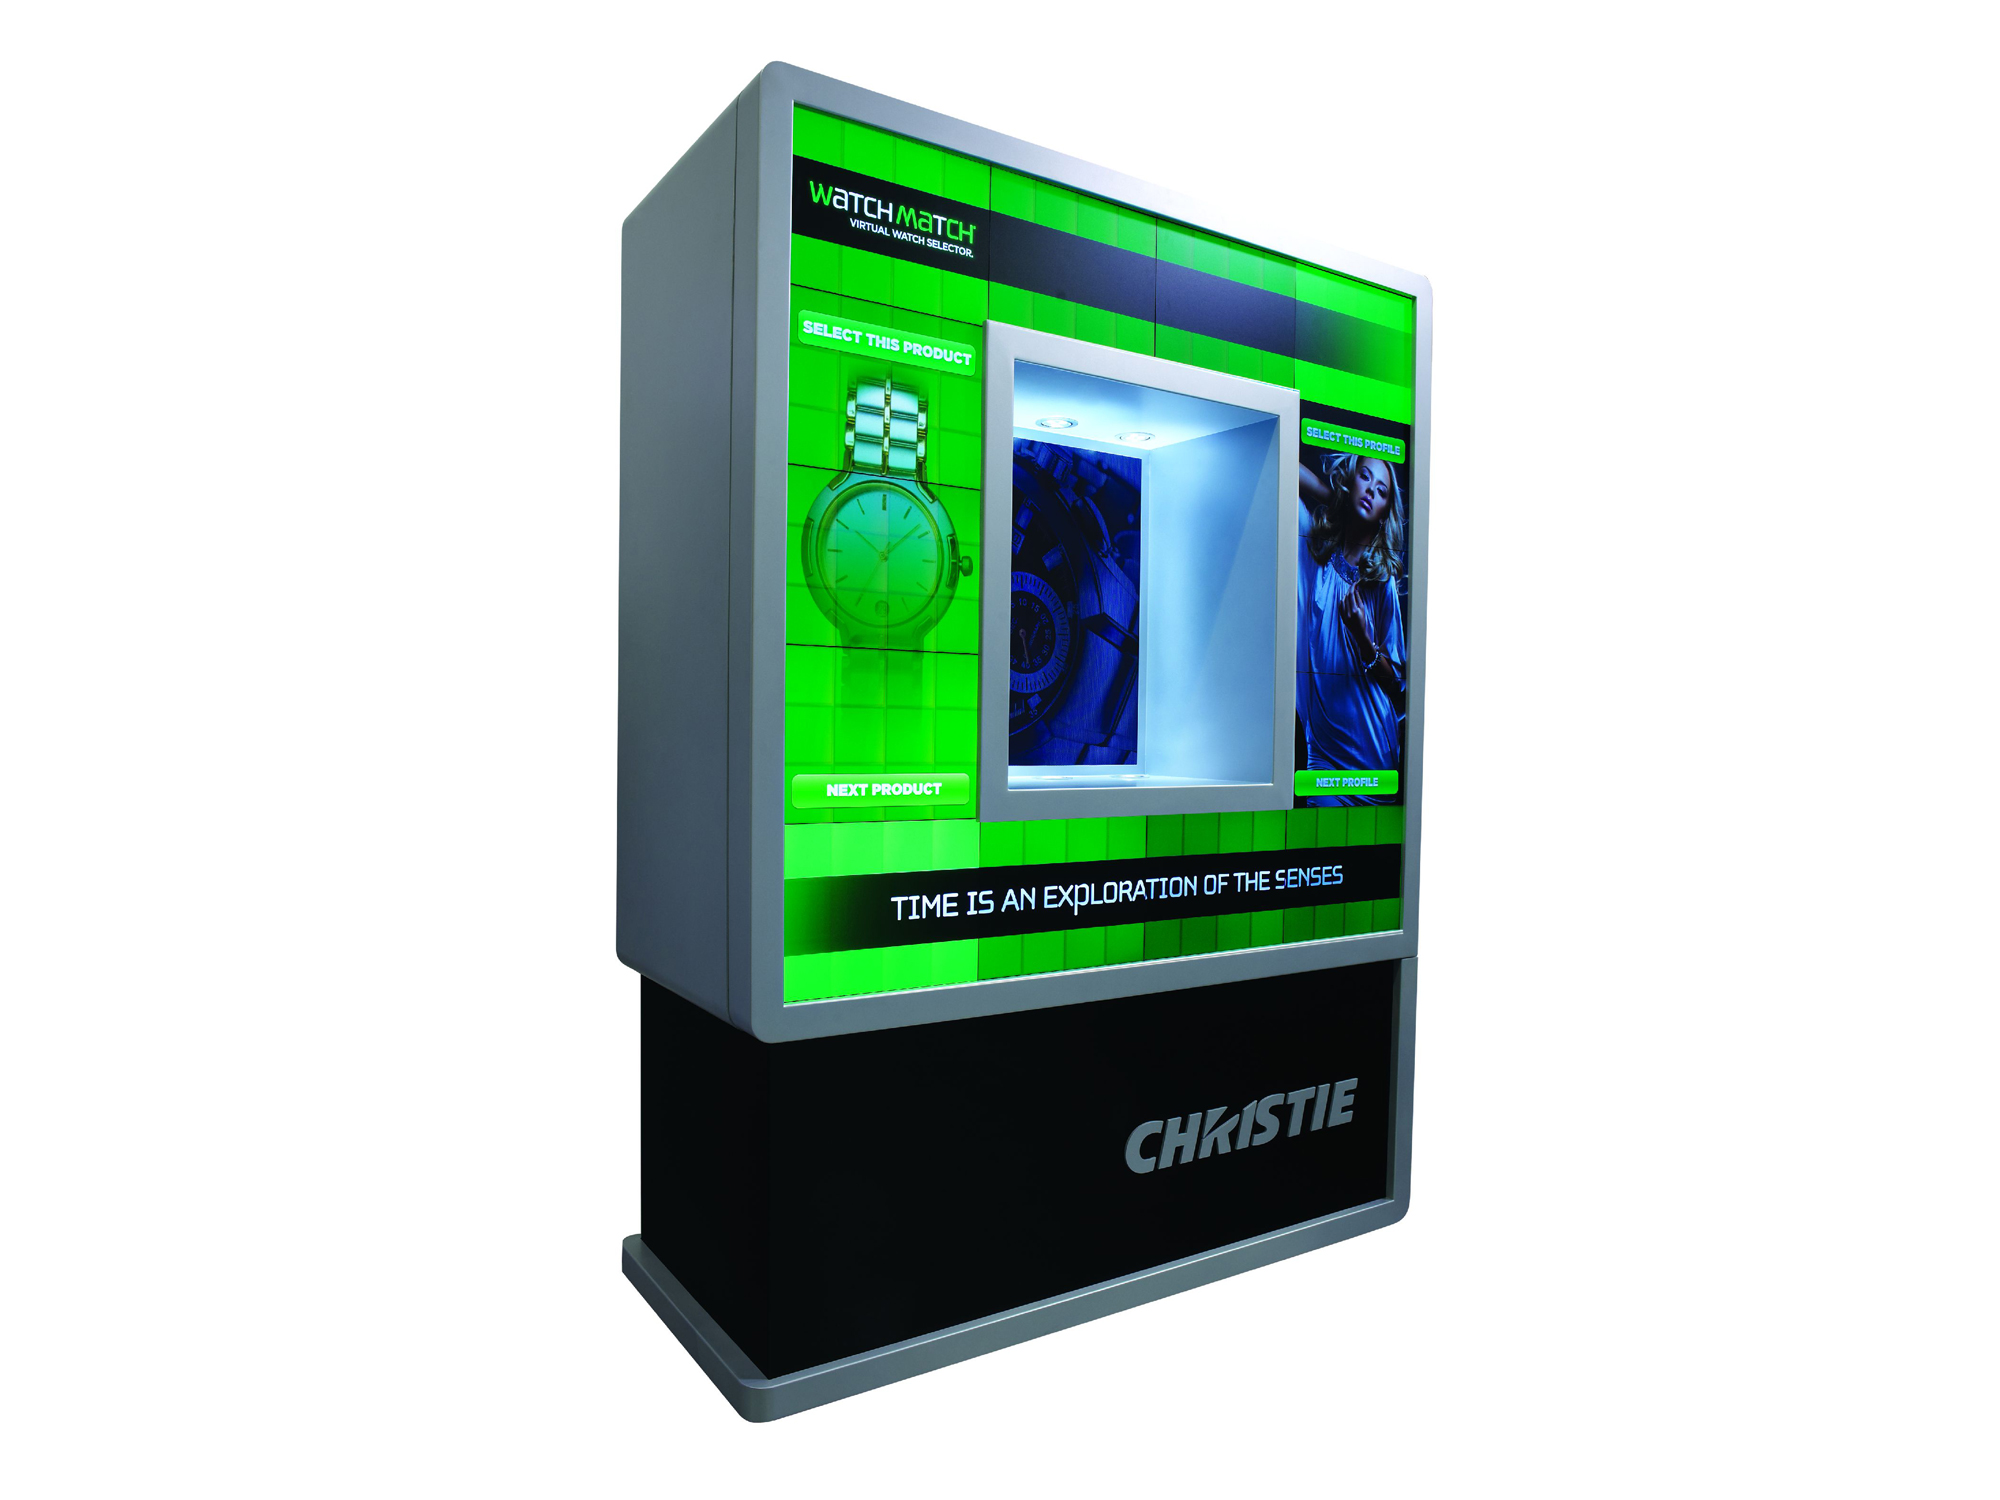 /globalassets/.catalog/products/images/microtiles/gallery/christie-microtiles-digital-signage-video-walls-image10.jpg